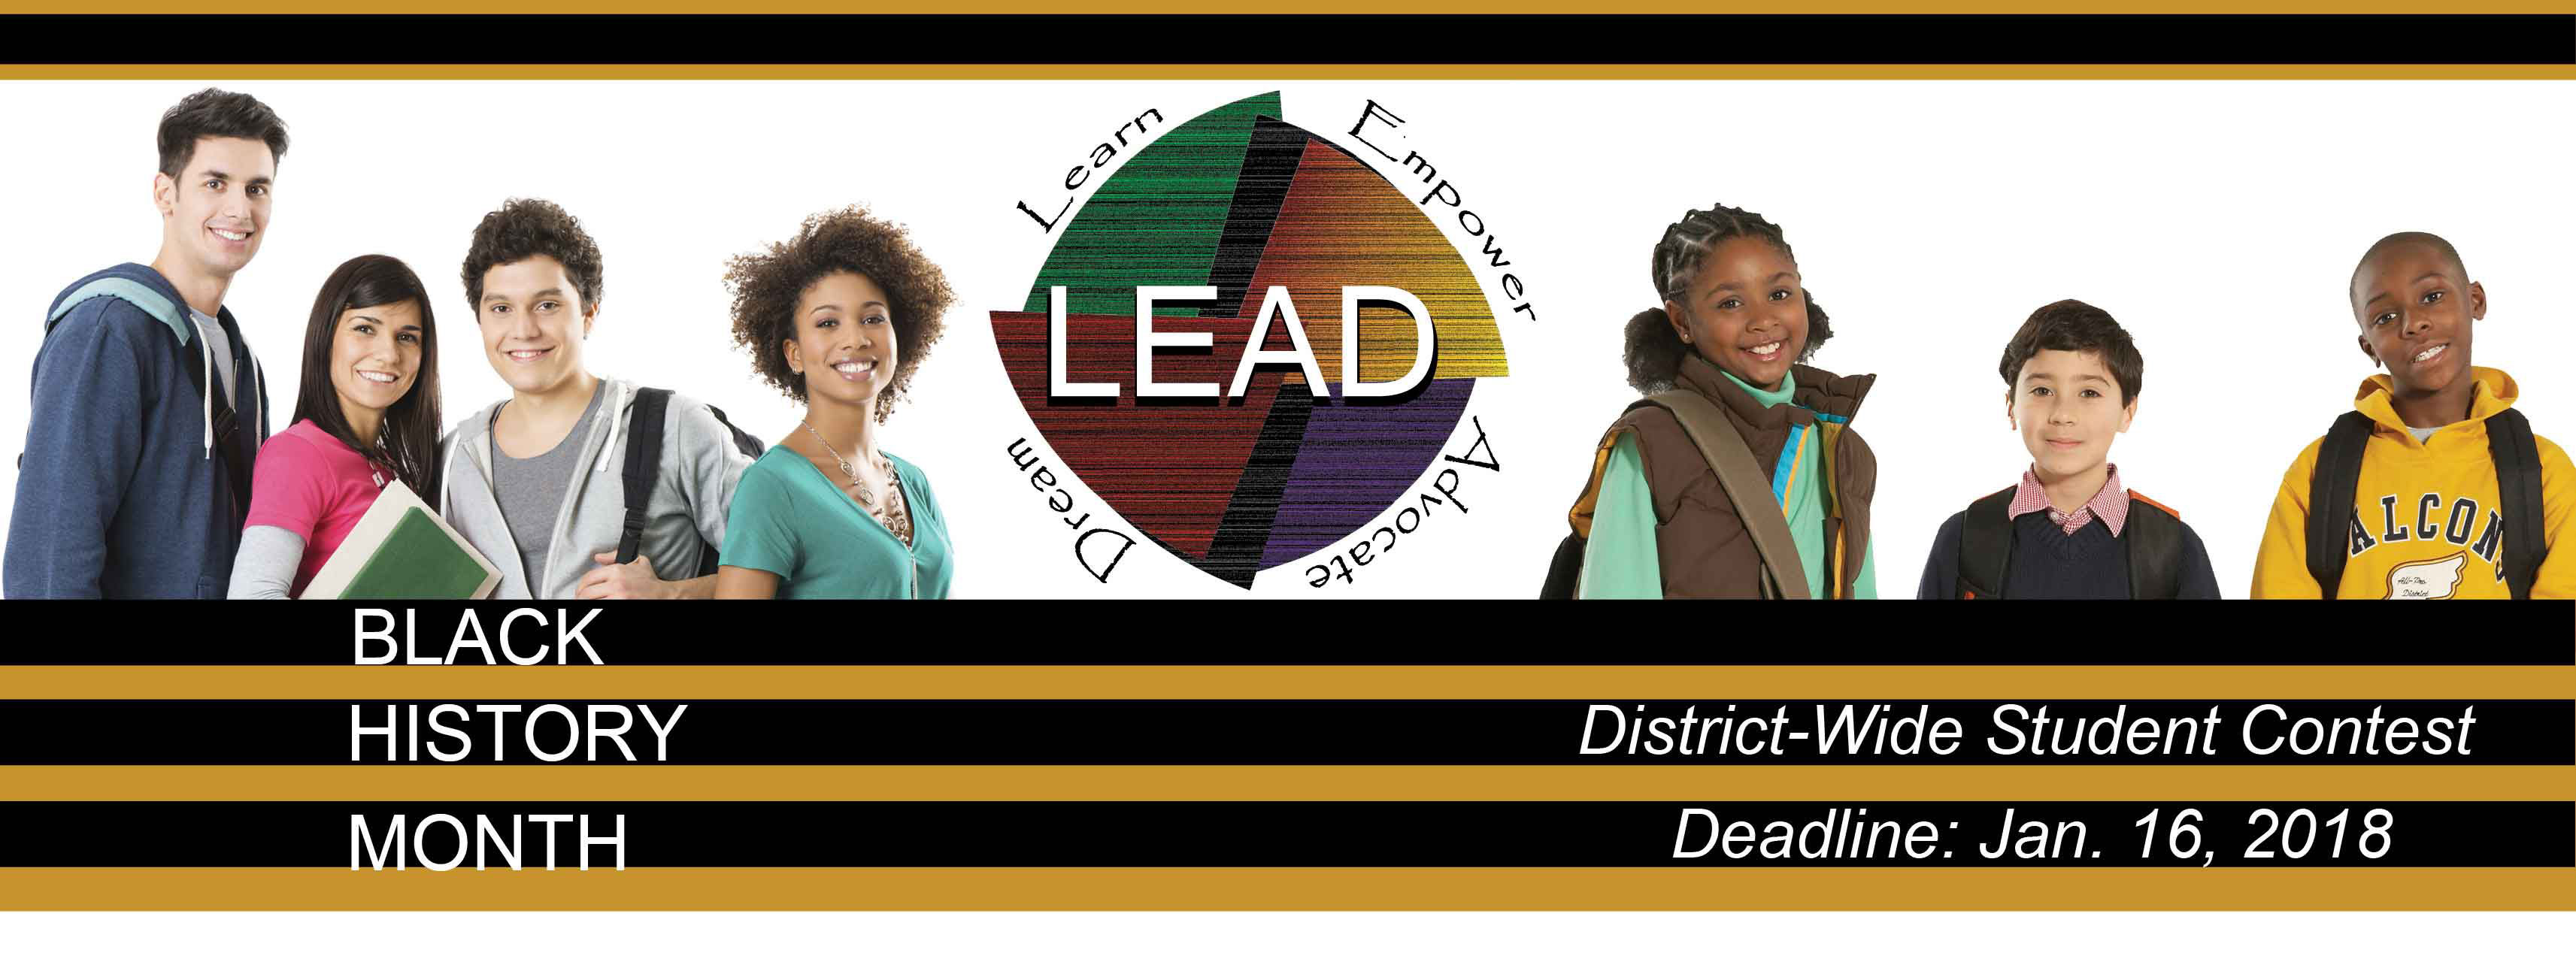 Hillsborough County Public Schools is proud to announce this year's LEAD (Learn, Empower, Advocate, Dream) Student Contest has b